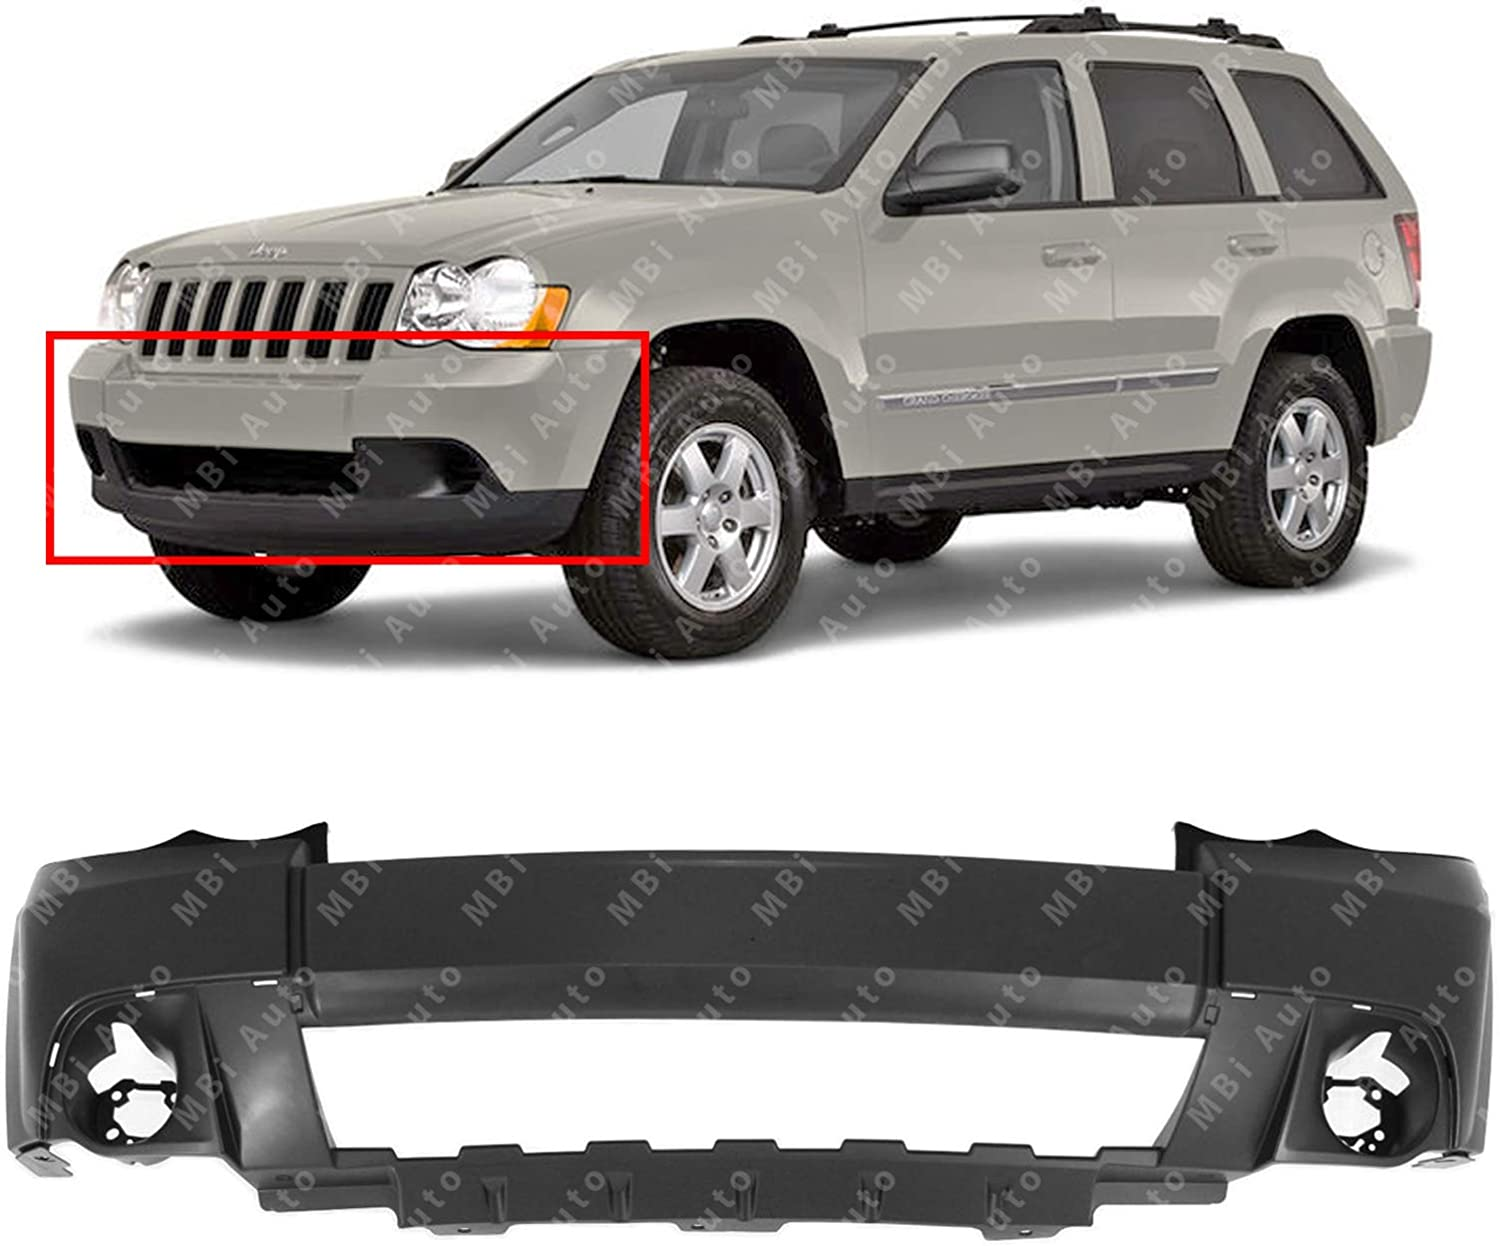 NEW CH1000932 BUMPER COVER PRIME FRONT FOR JEEP GRAND CHEROKEE 2008-2010